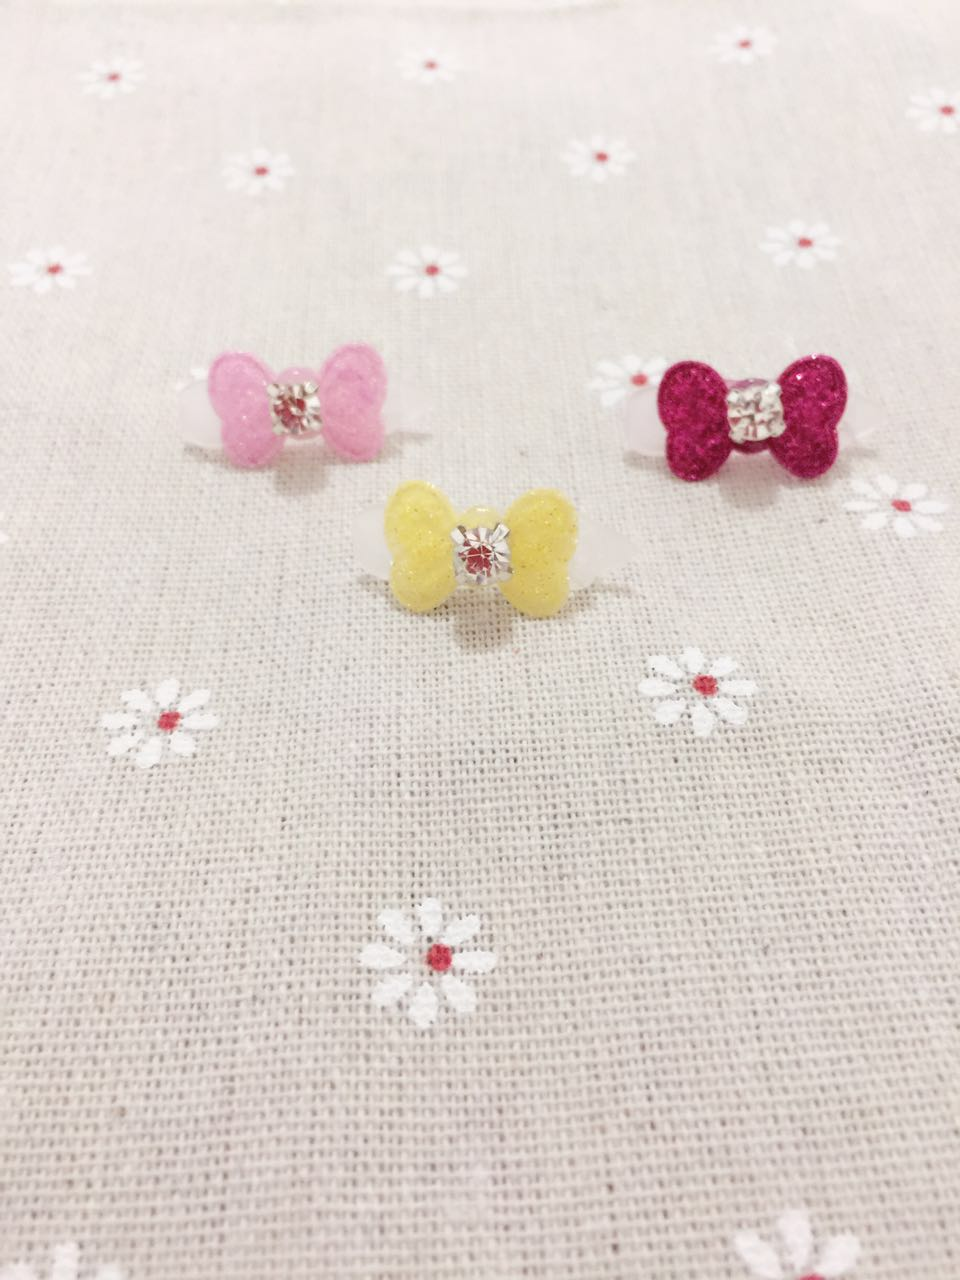 Pet hairpin Cute Gift Handmade Super Shining Mini BB 2 5 cm Bows Clip Dog Hair bows TL19081001 in Dog Accessories from Home Garden